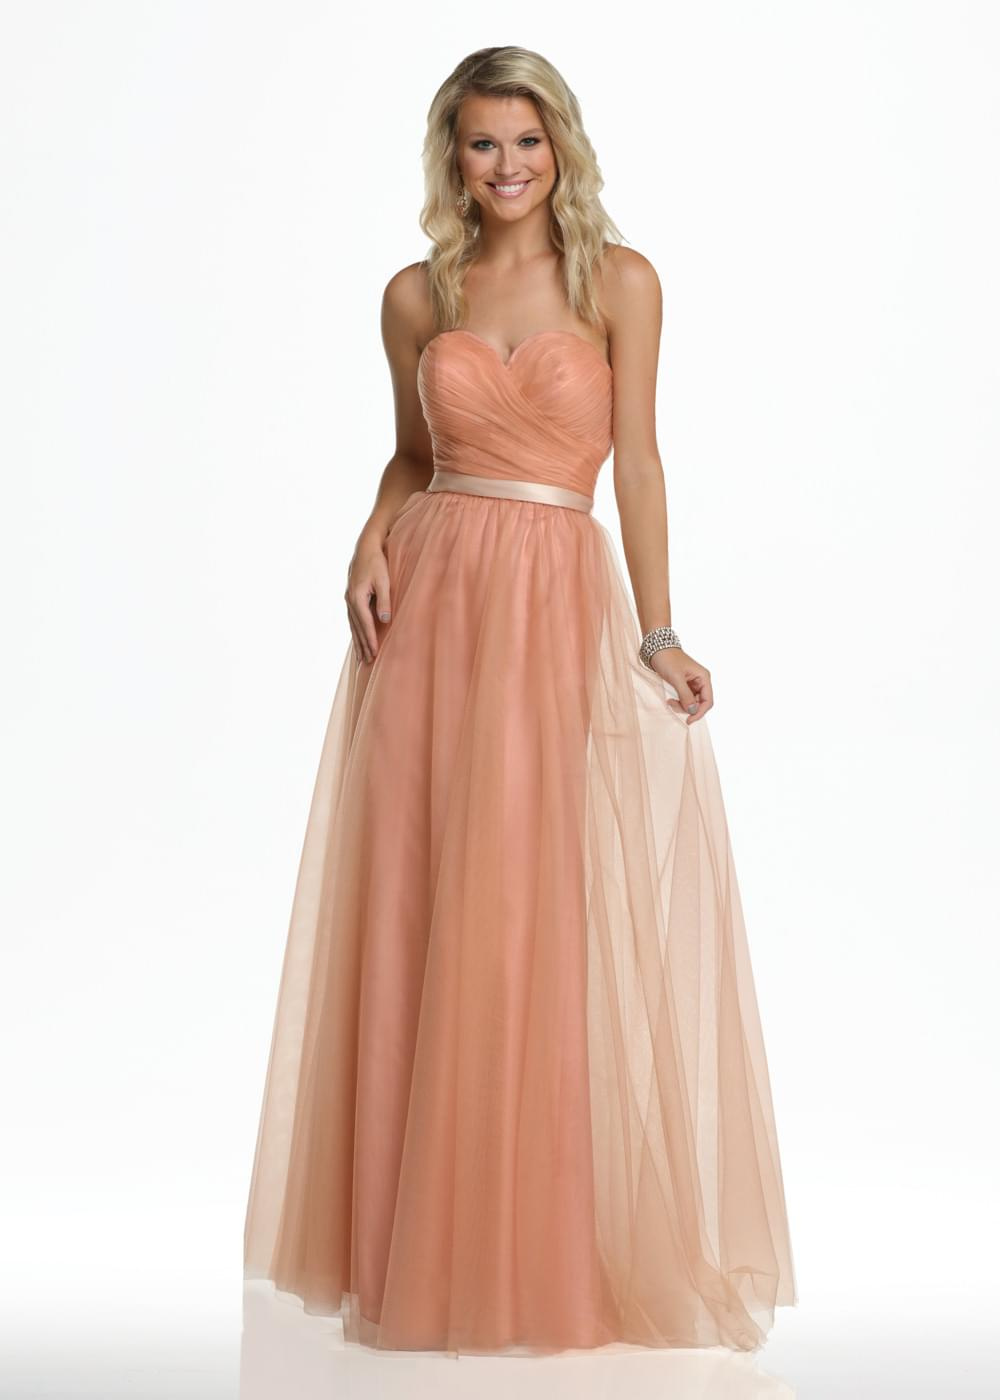 80059 Long Dresses By Ashdon